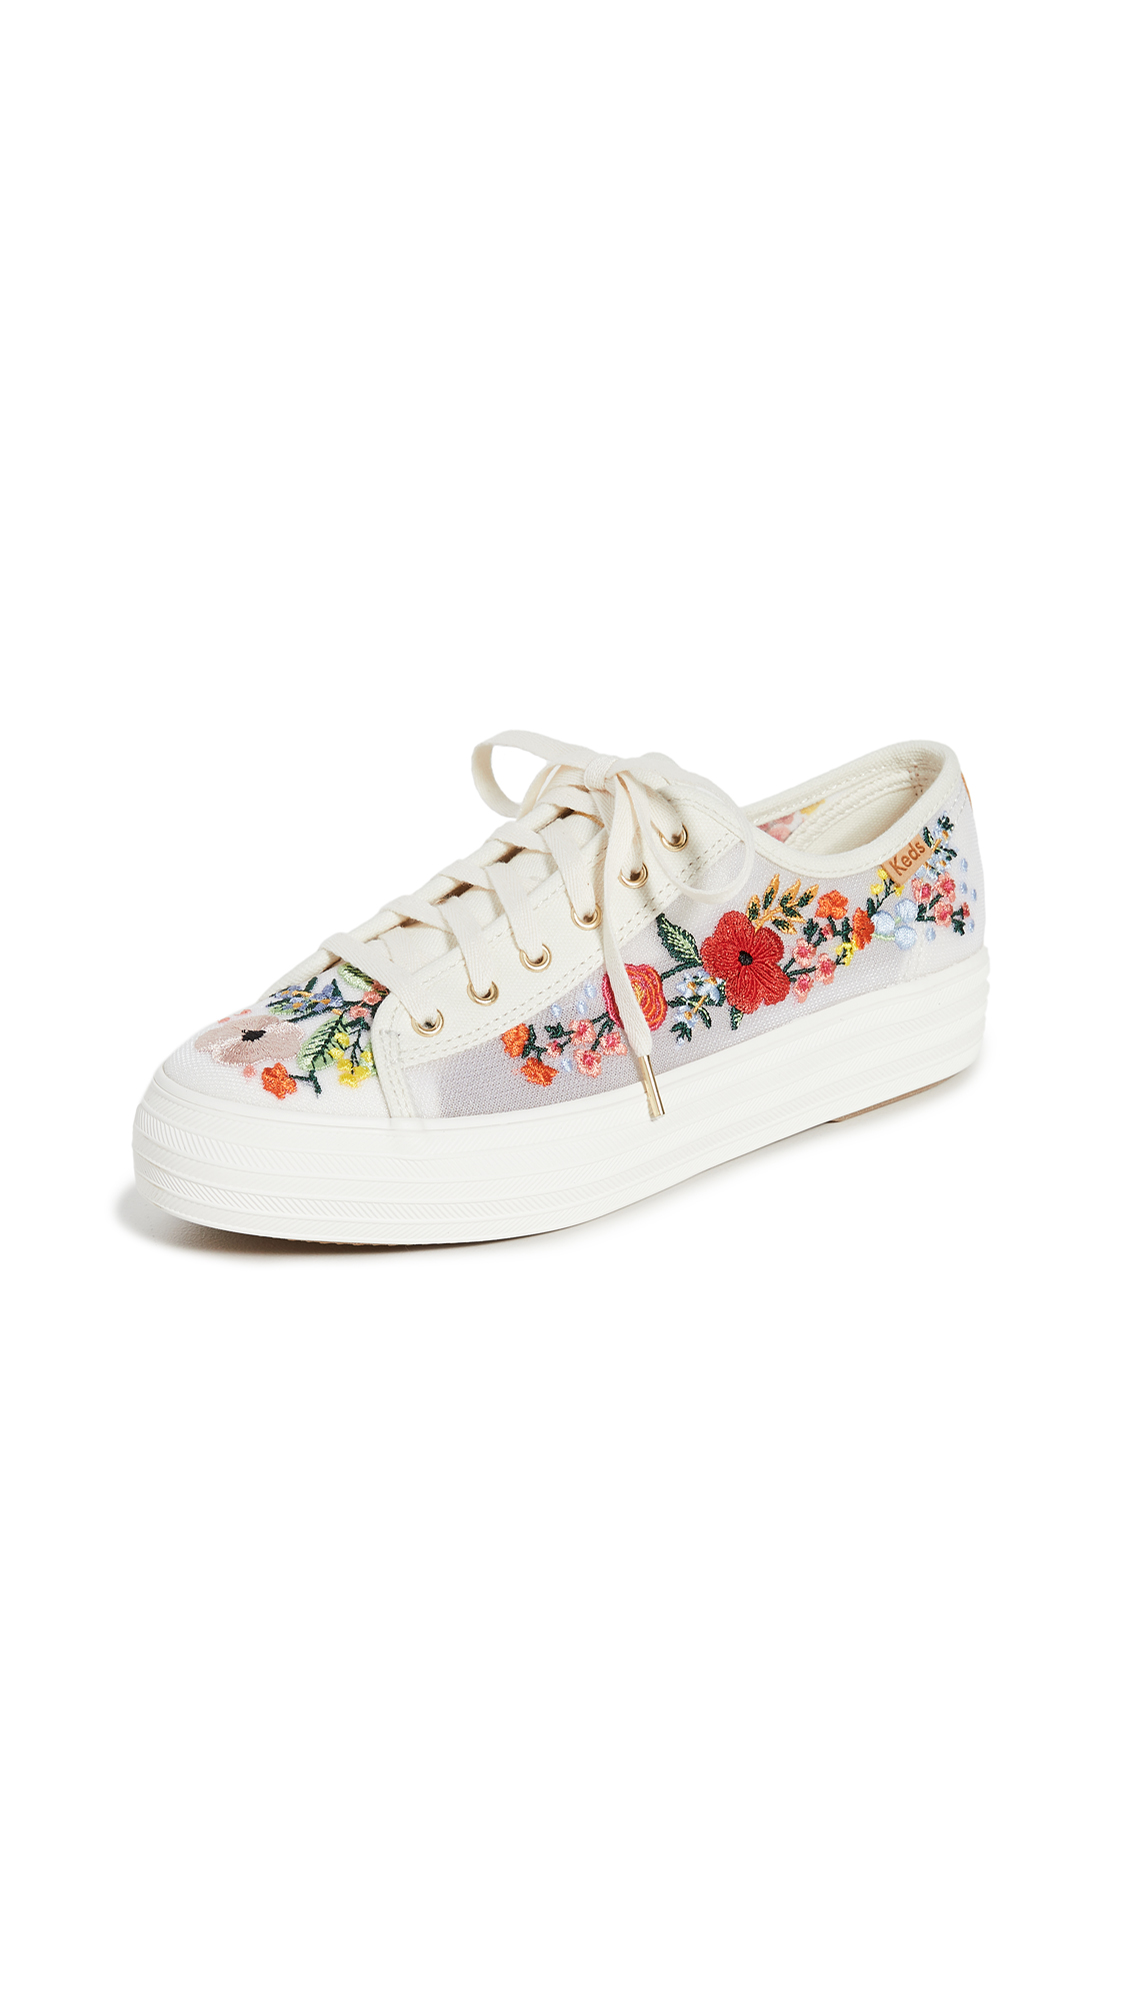 Keds Triple Kick Embroidered Mesh Sneakers – 30% Off Sale